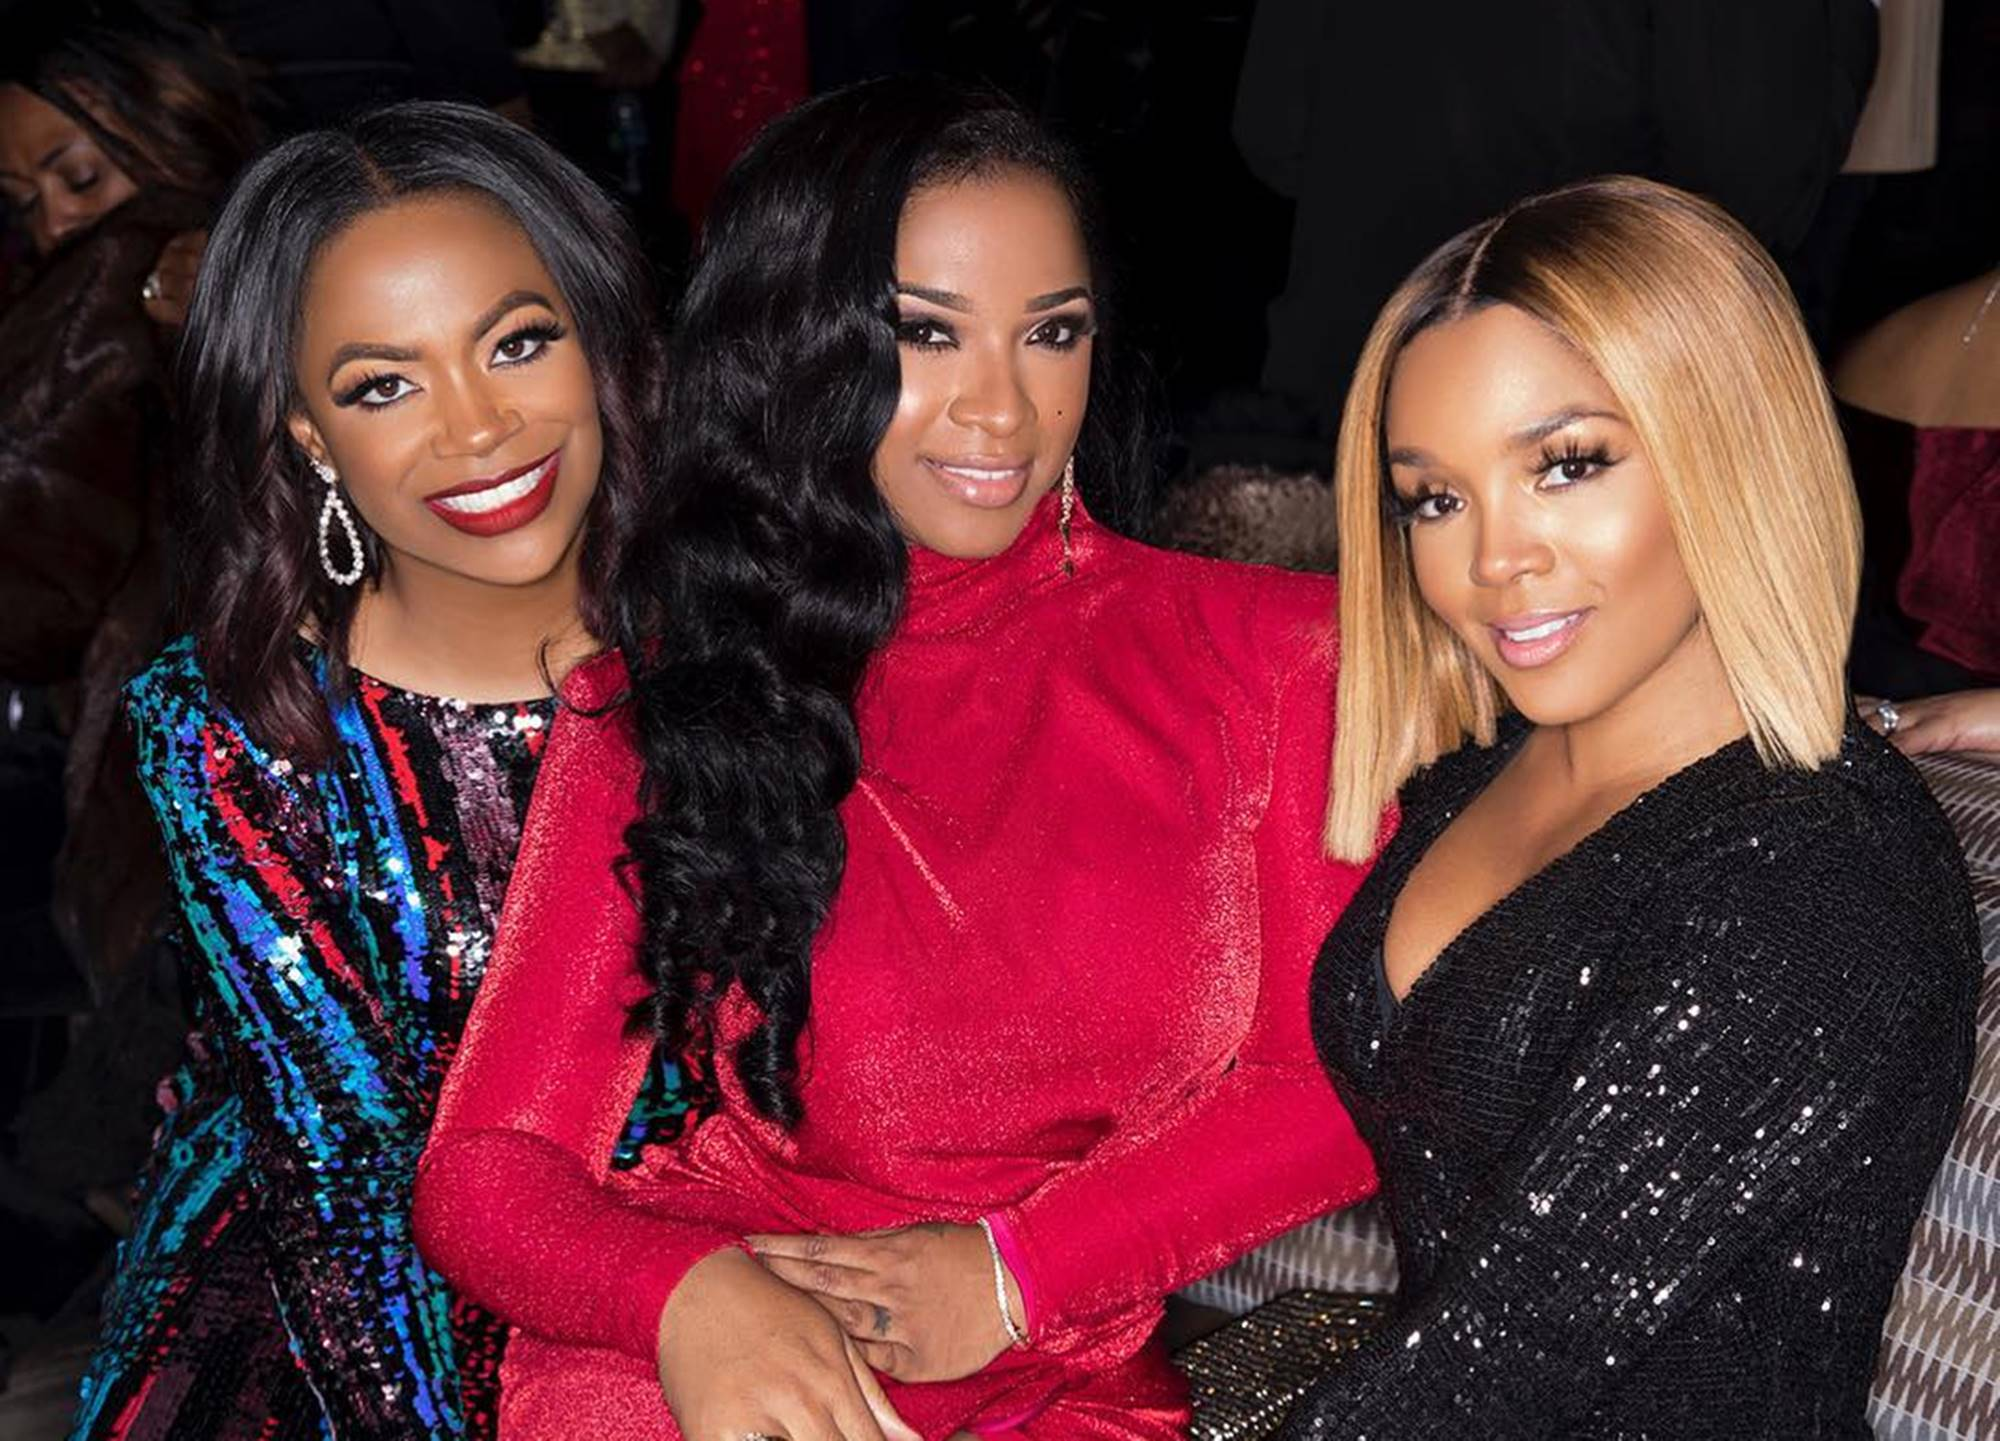 Rasheeda Frost Spends A Chill Night At The Frost Bistro With Toya Wright, Kandi Burruss And Their Families - See The Video